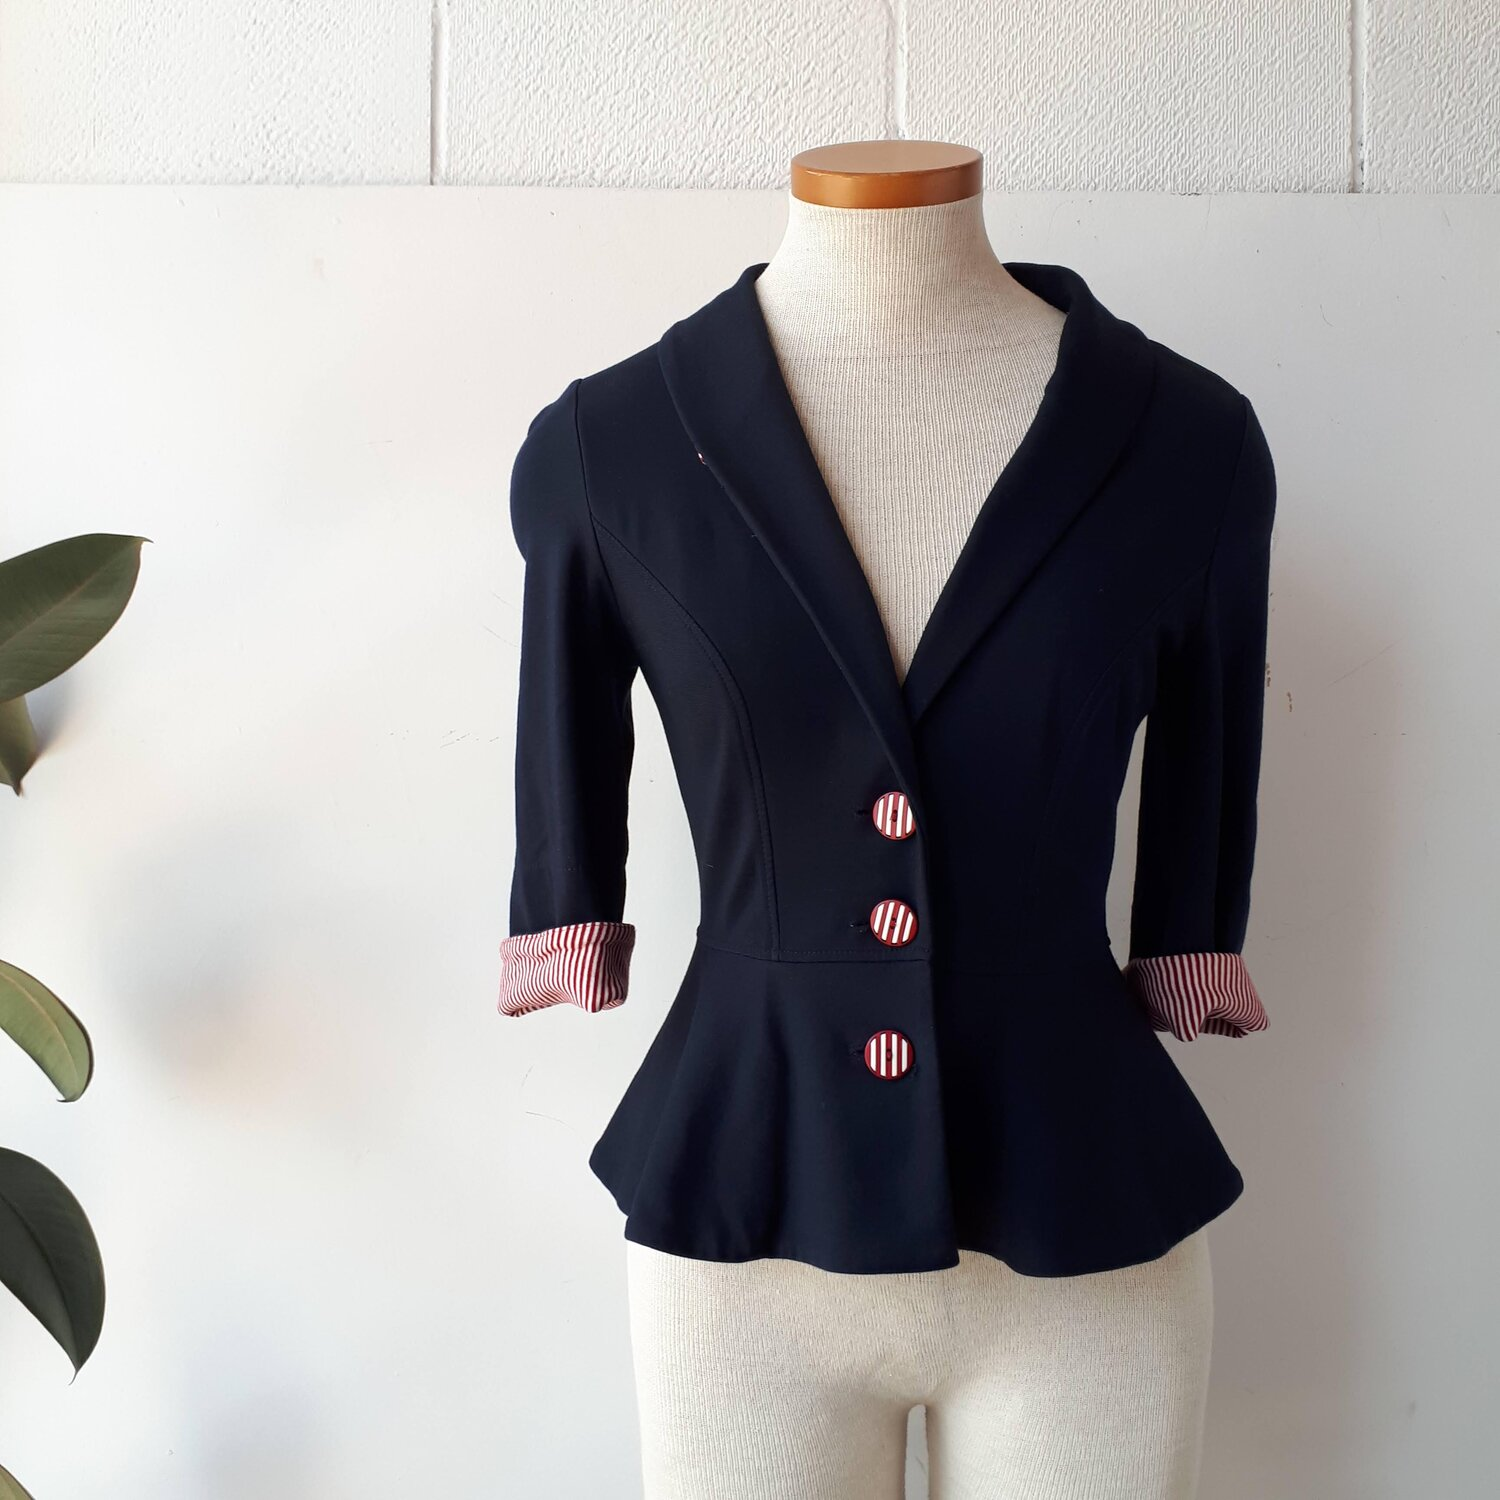 Annie 50 jacket, Size XS  Red Pony Consignment